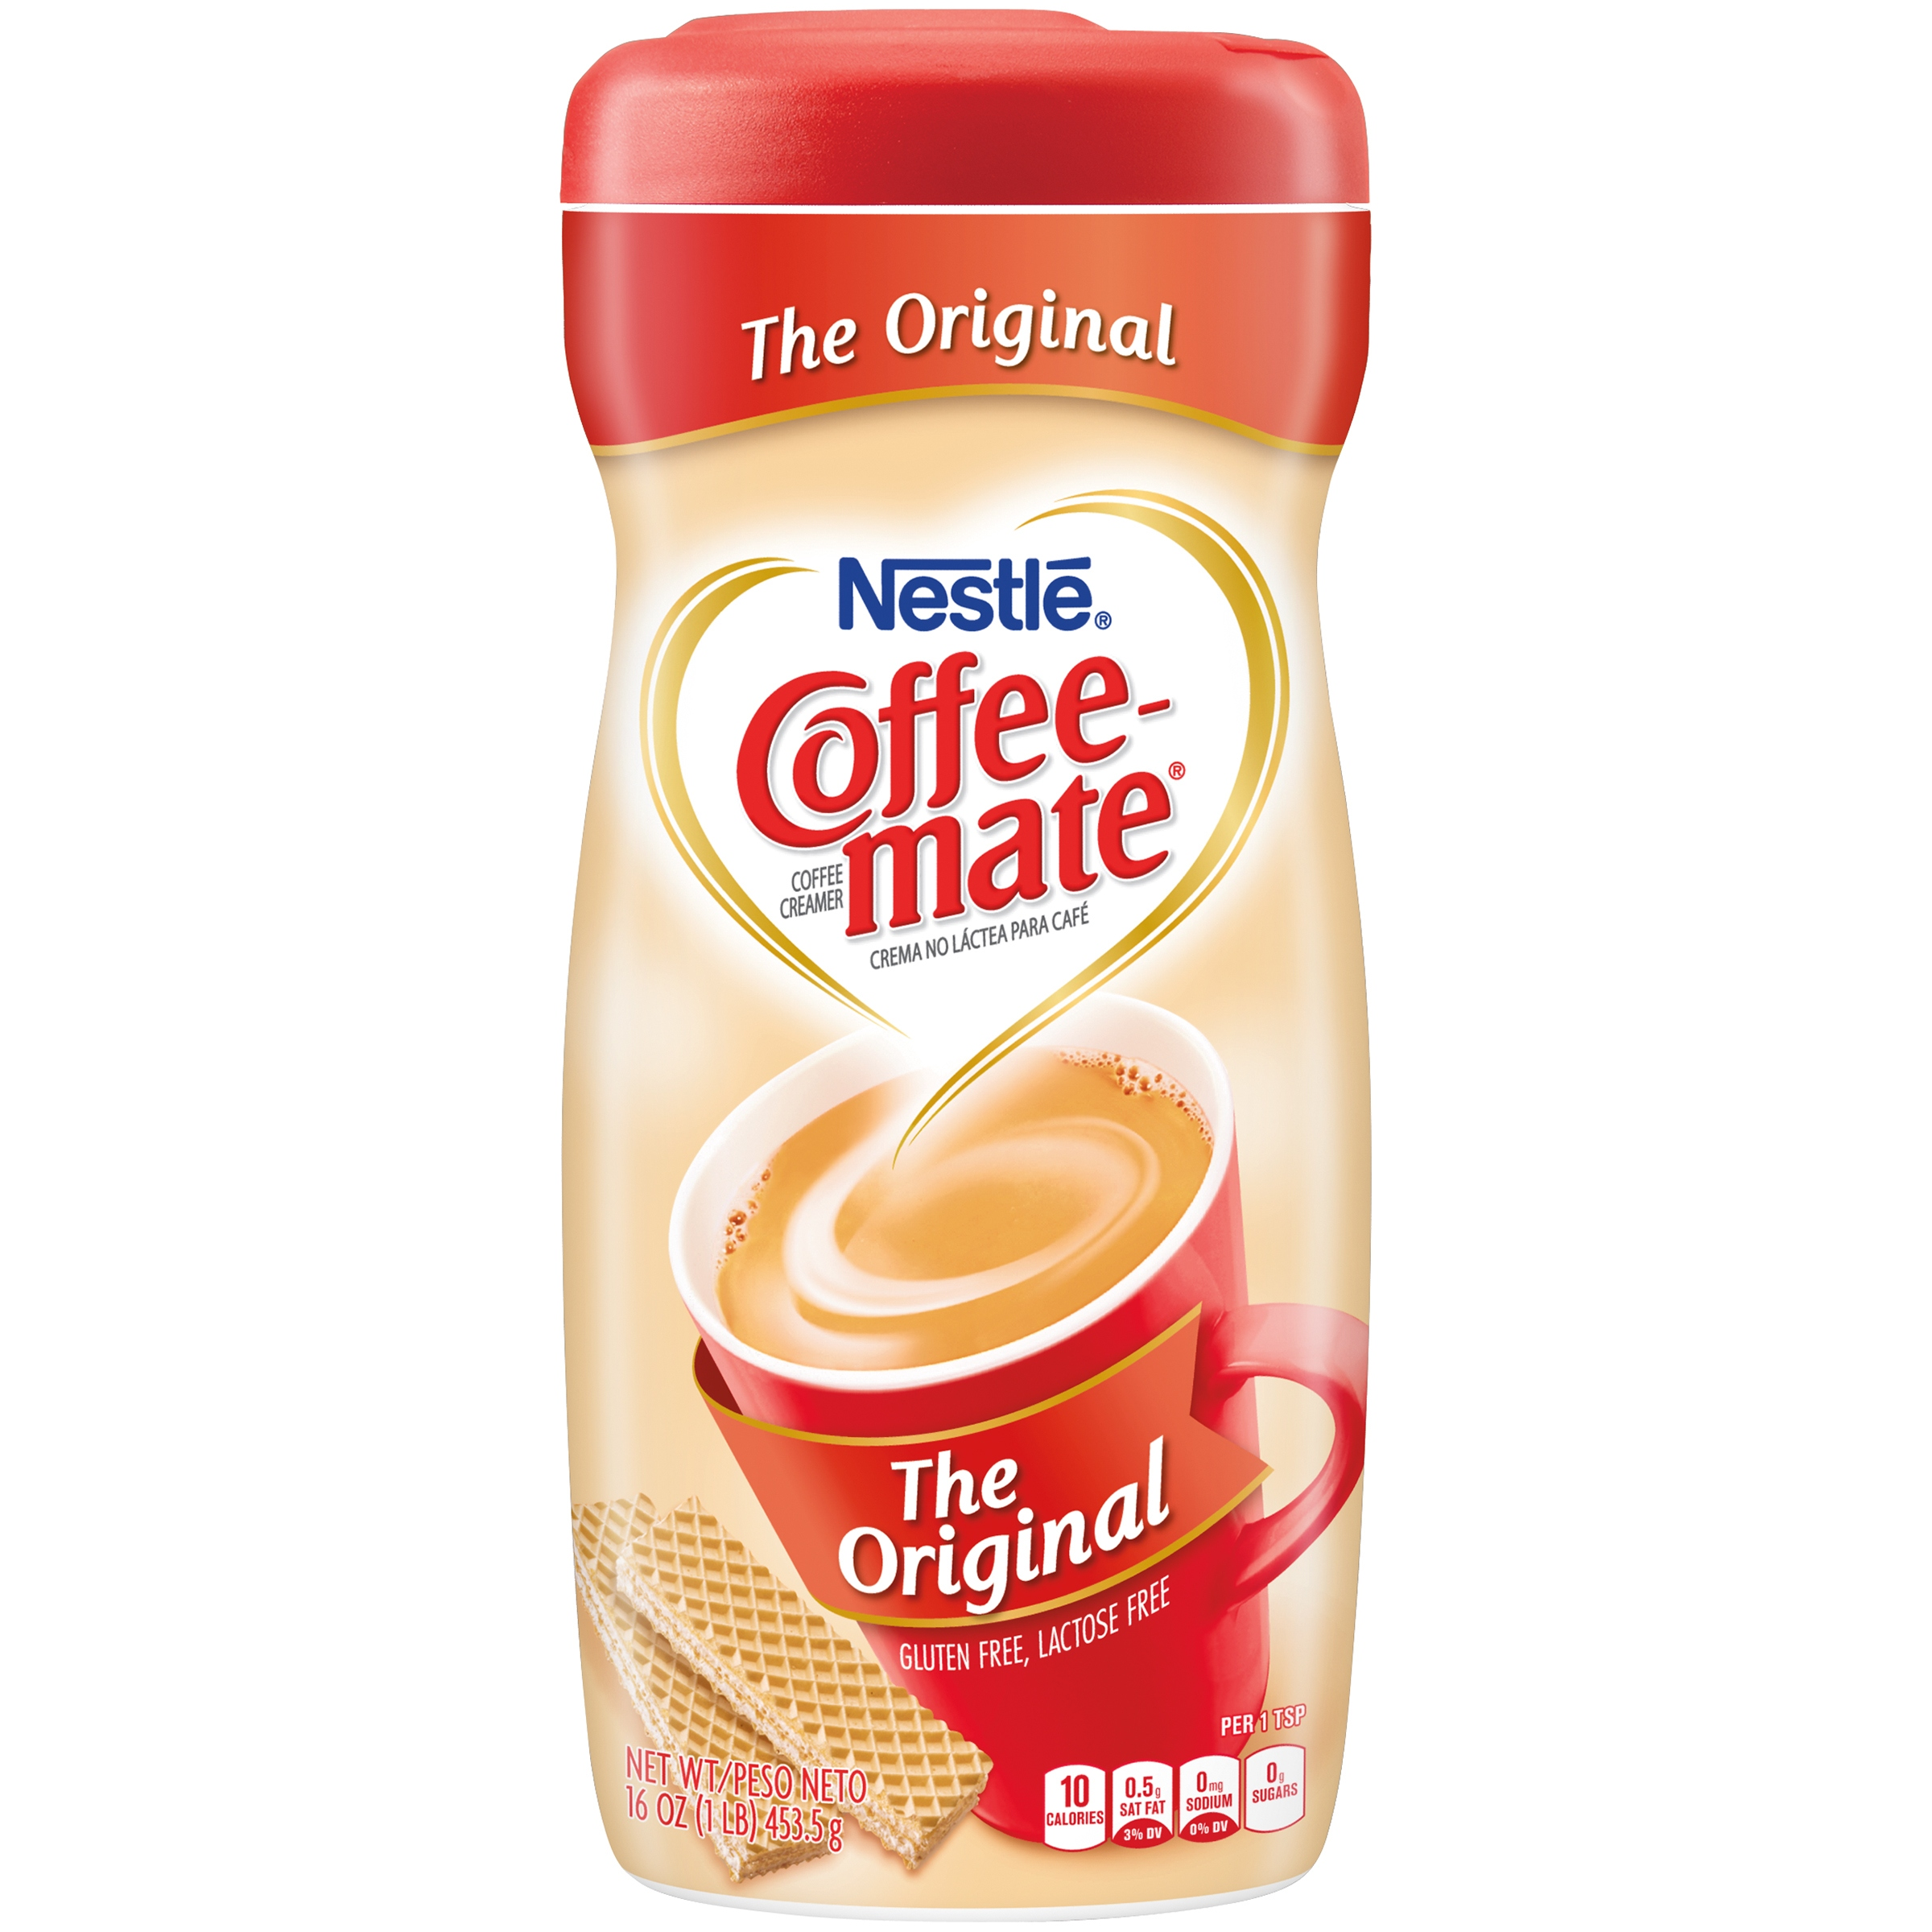 (2 Pack) COFFEE-MATE The Original Powder Coffee Creamer 16 oz. Canister